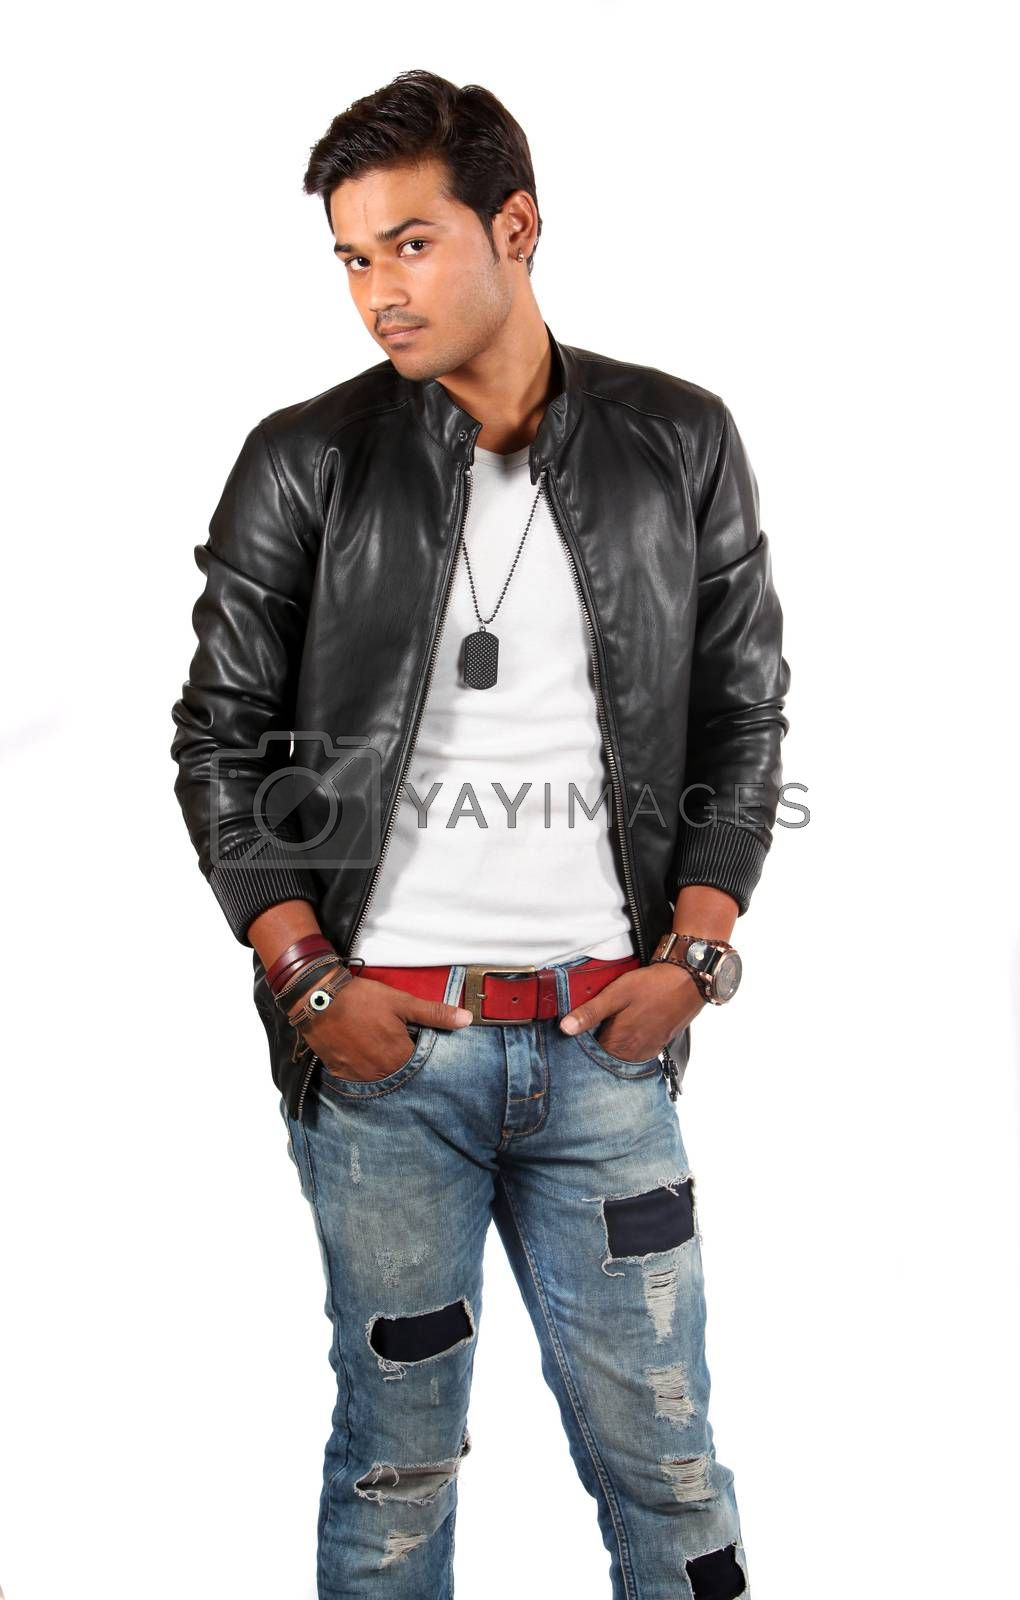 A smart handsome Indian model in leather jacket, on white studio background.